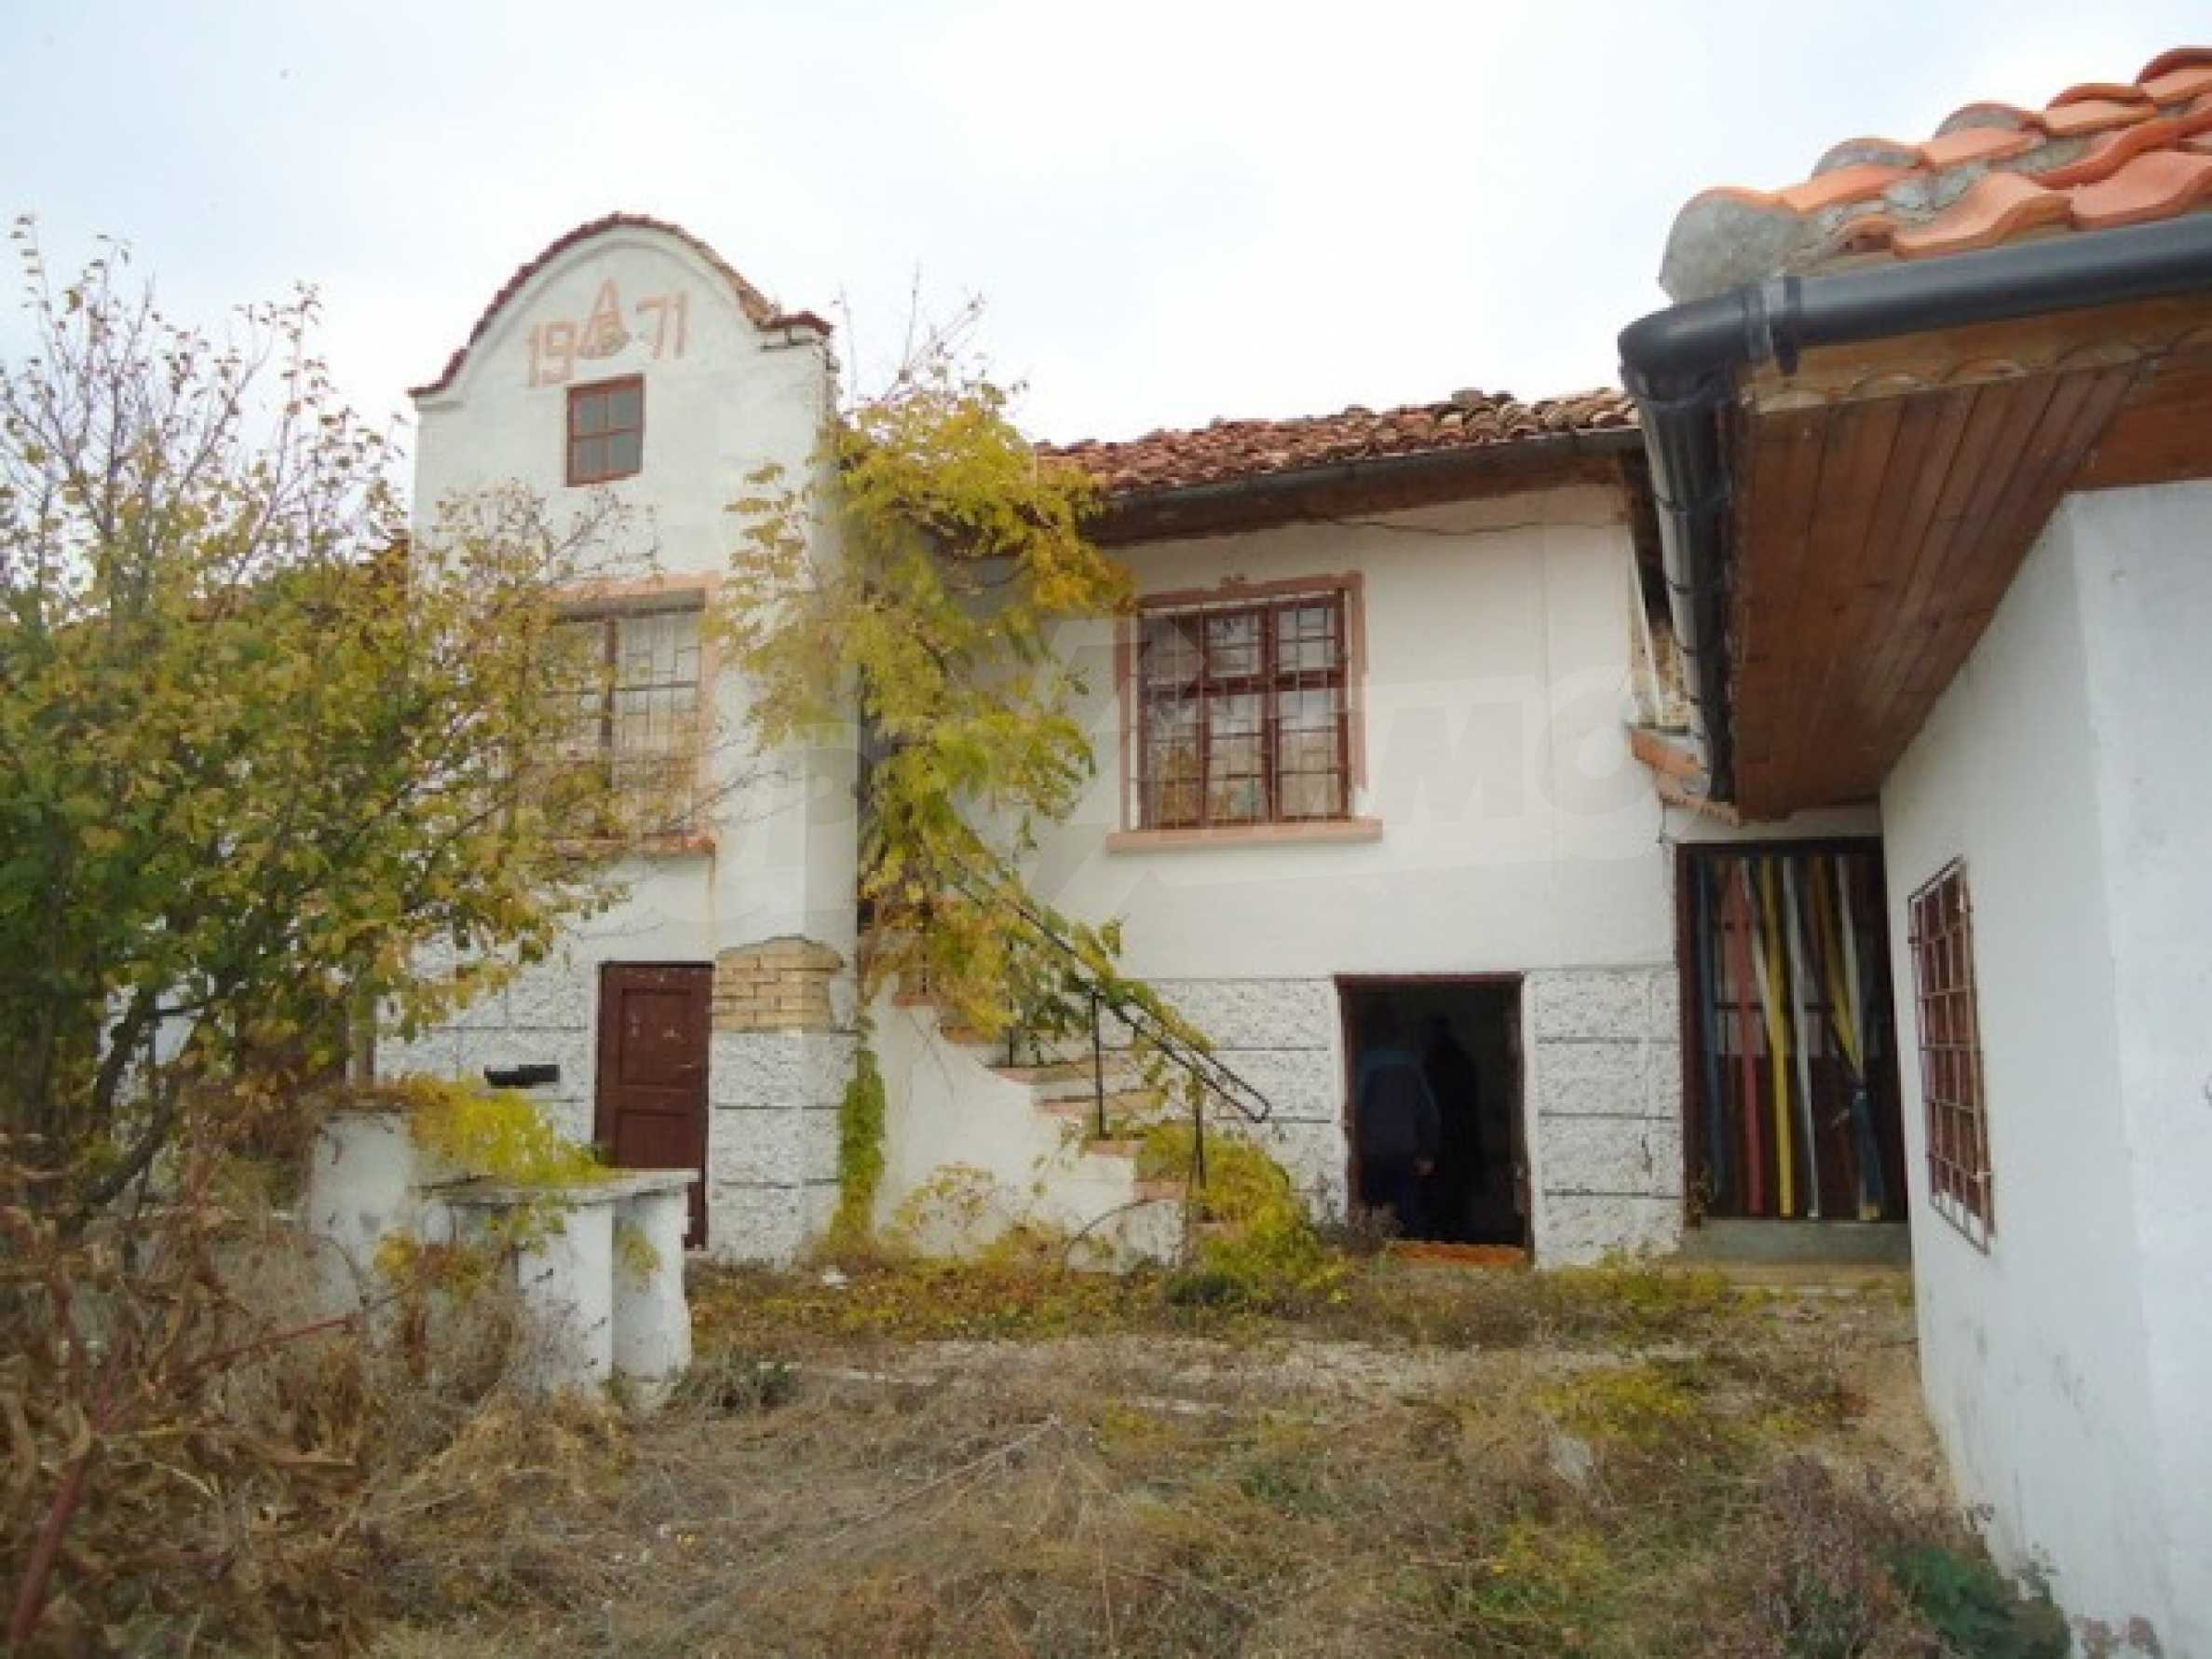 Two-storey house 24 km from the city of Shumen